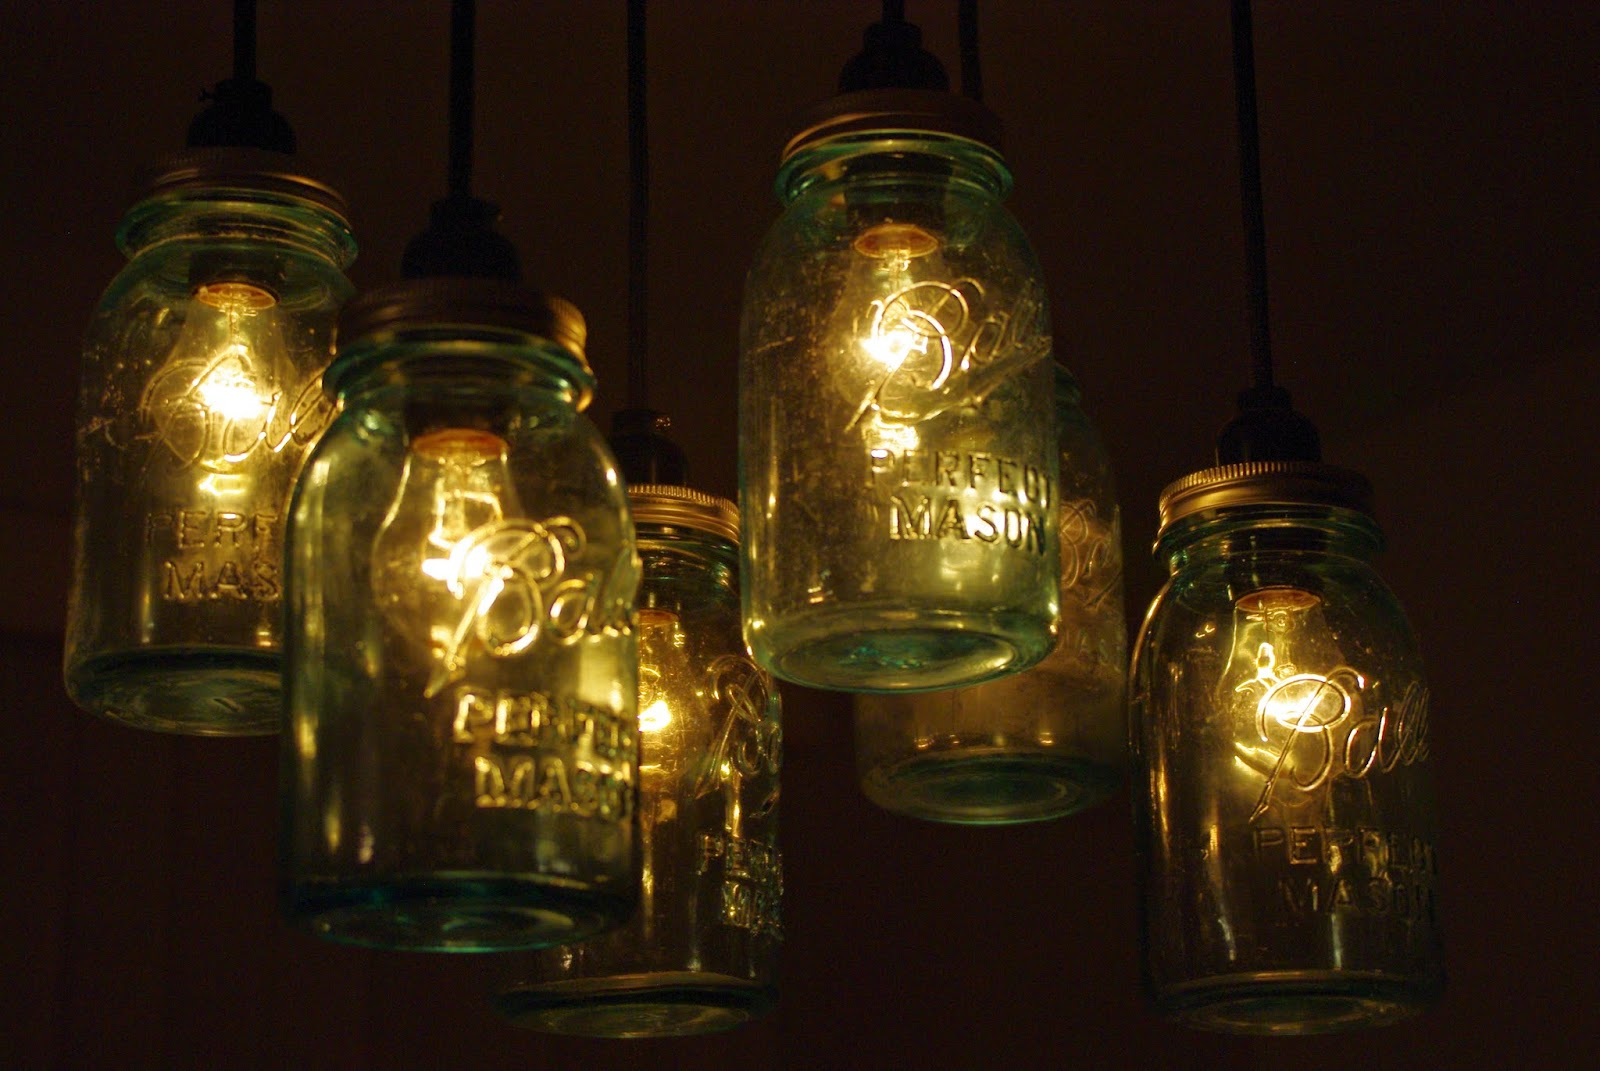 diy mason jar chandelier build diy mason jar chandelier